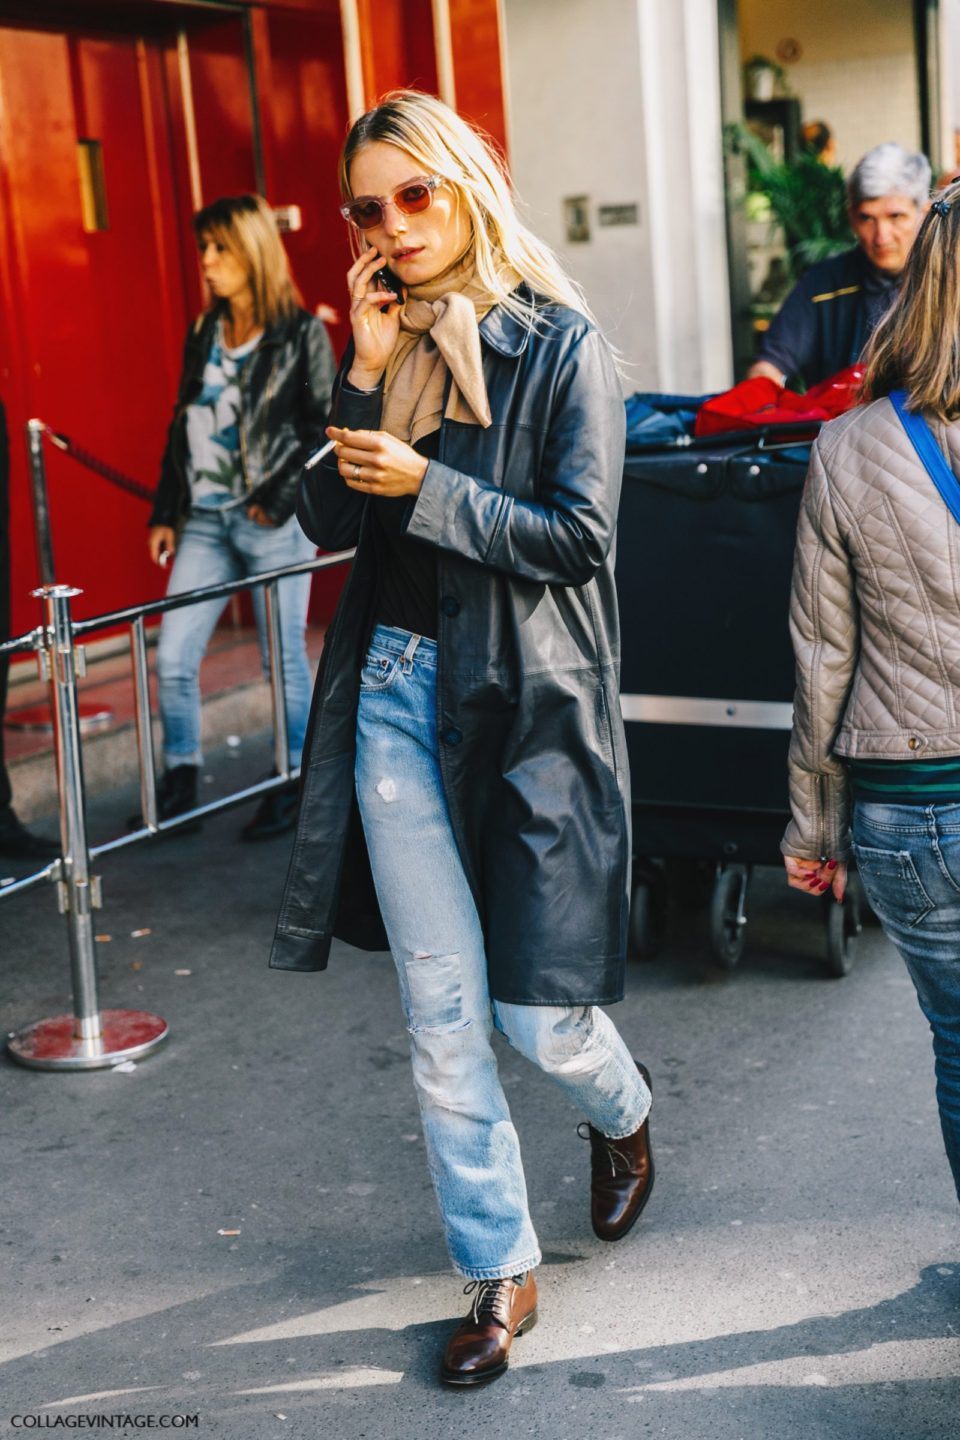 leather coat outfit, rj;fysq gkfo